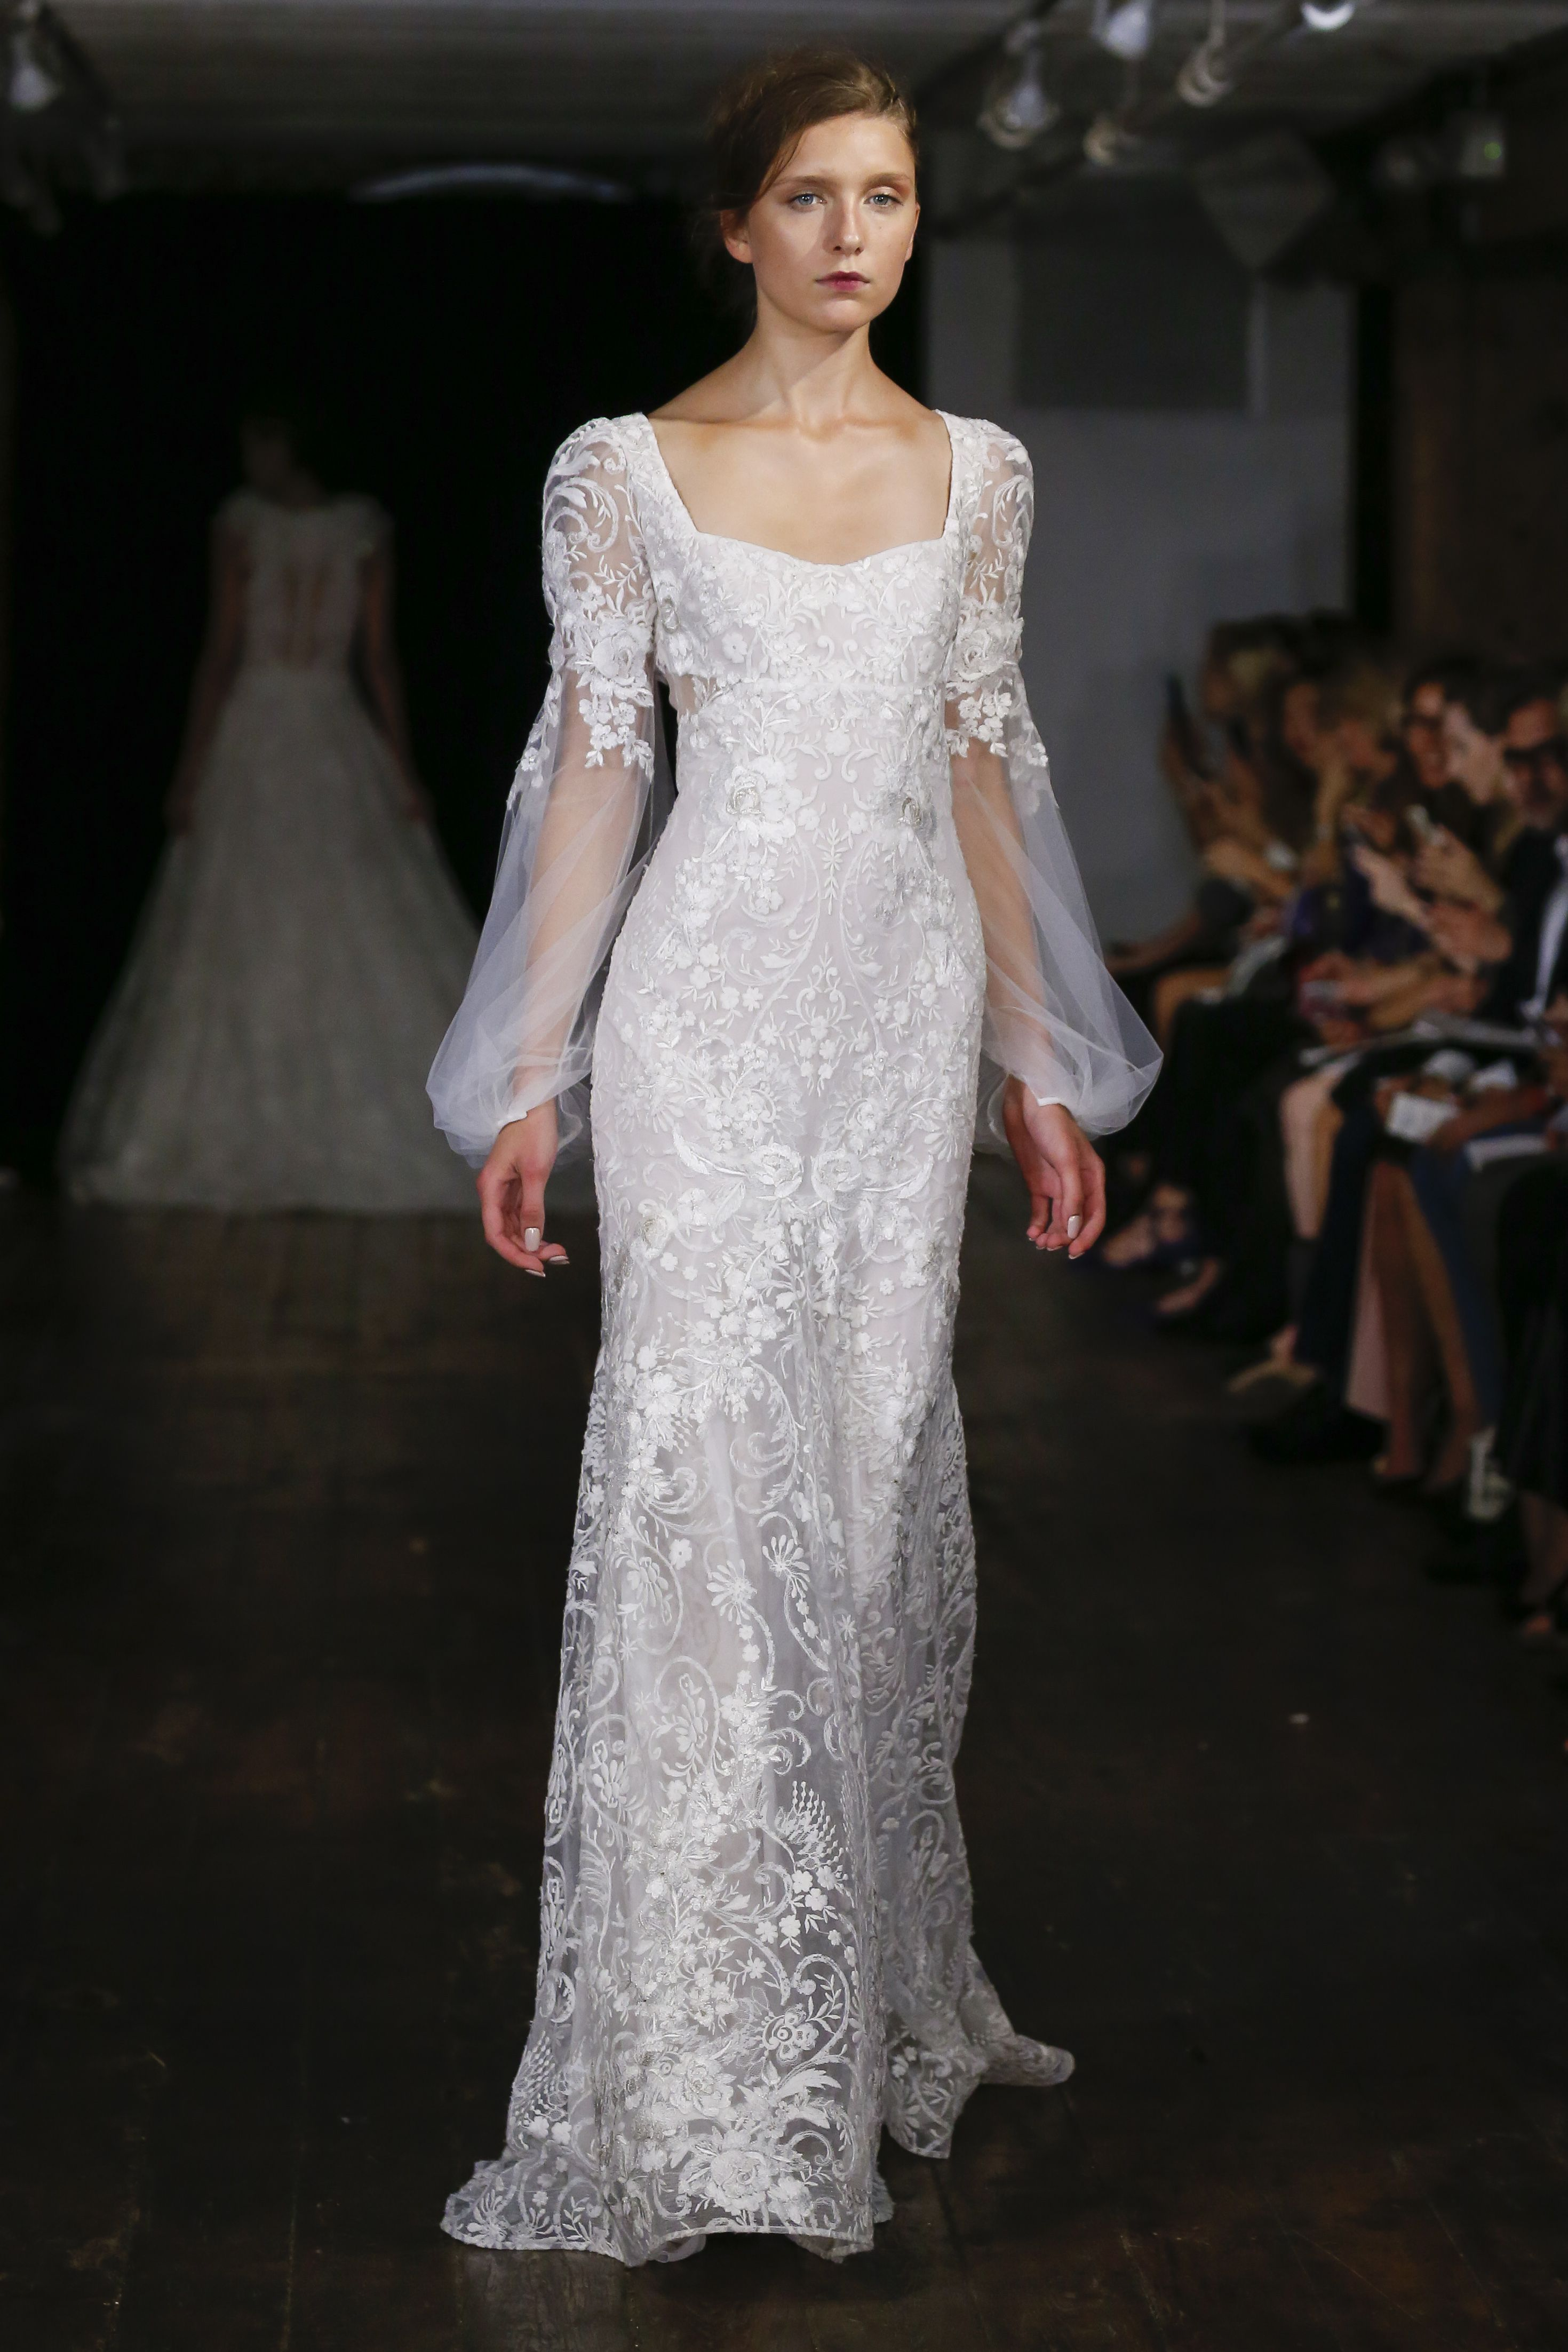 Wedding Wedding Dresses Orlando classic a line wedding dress with removable cape at solutions lace from the fallwinter 2017 rivini collection bridal orlando